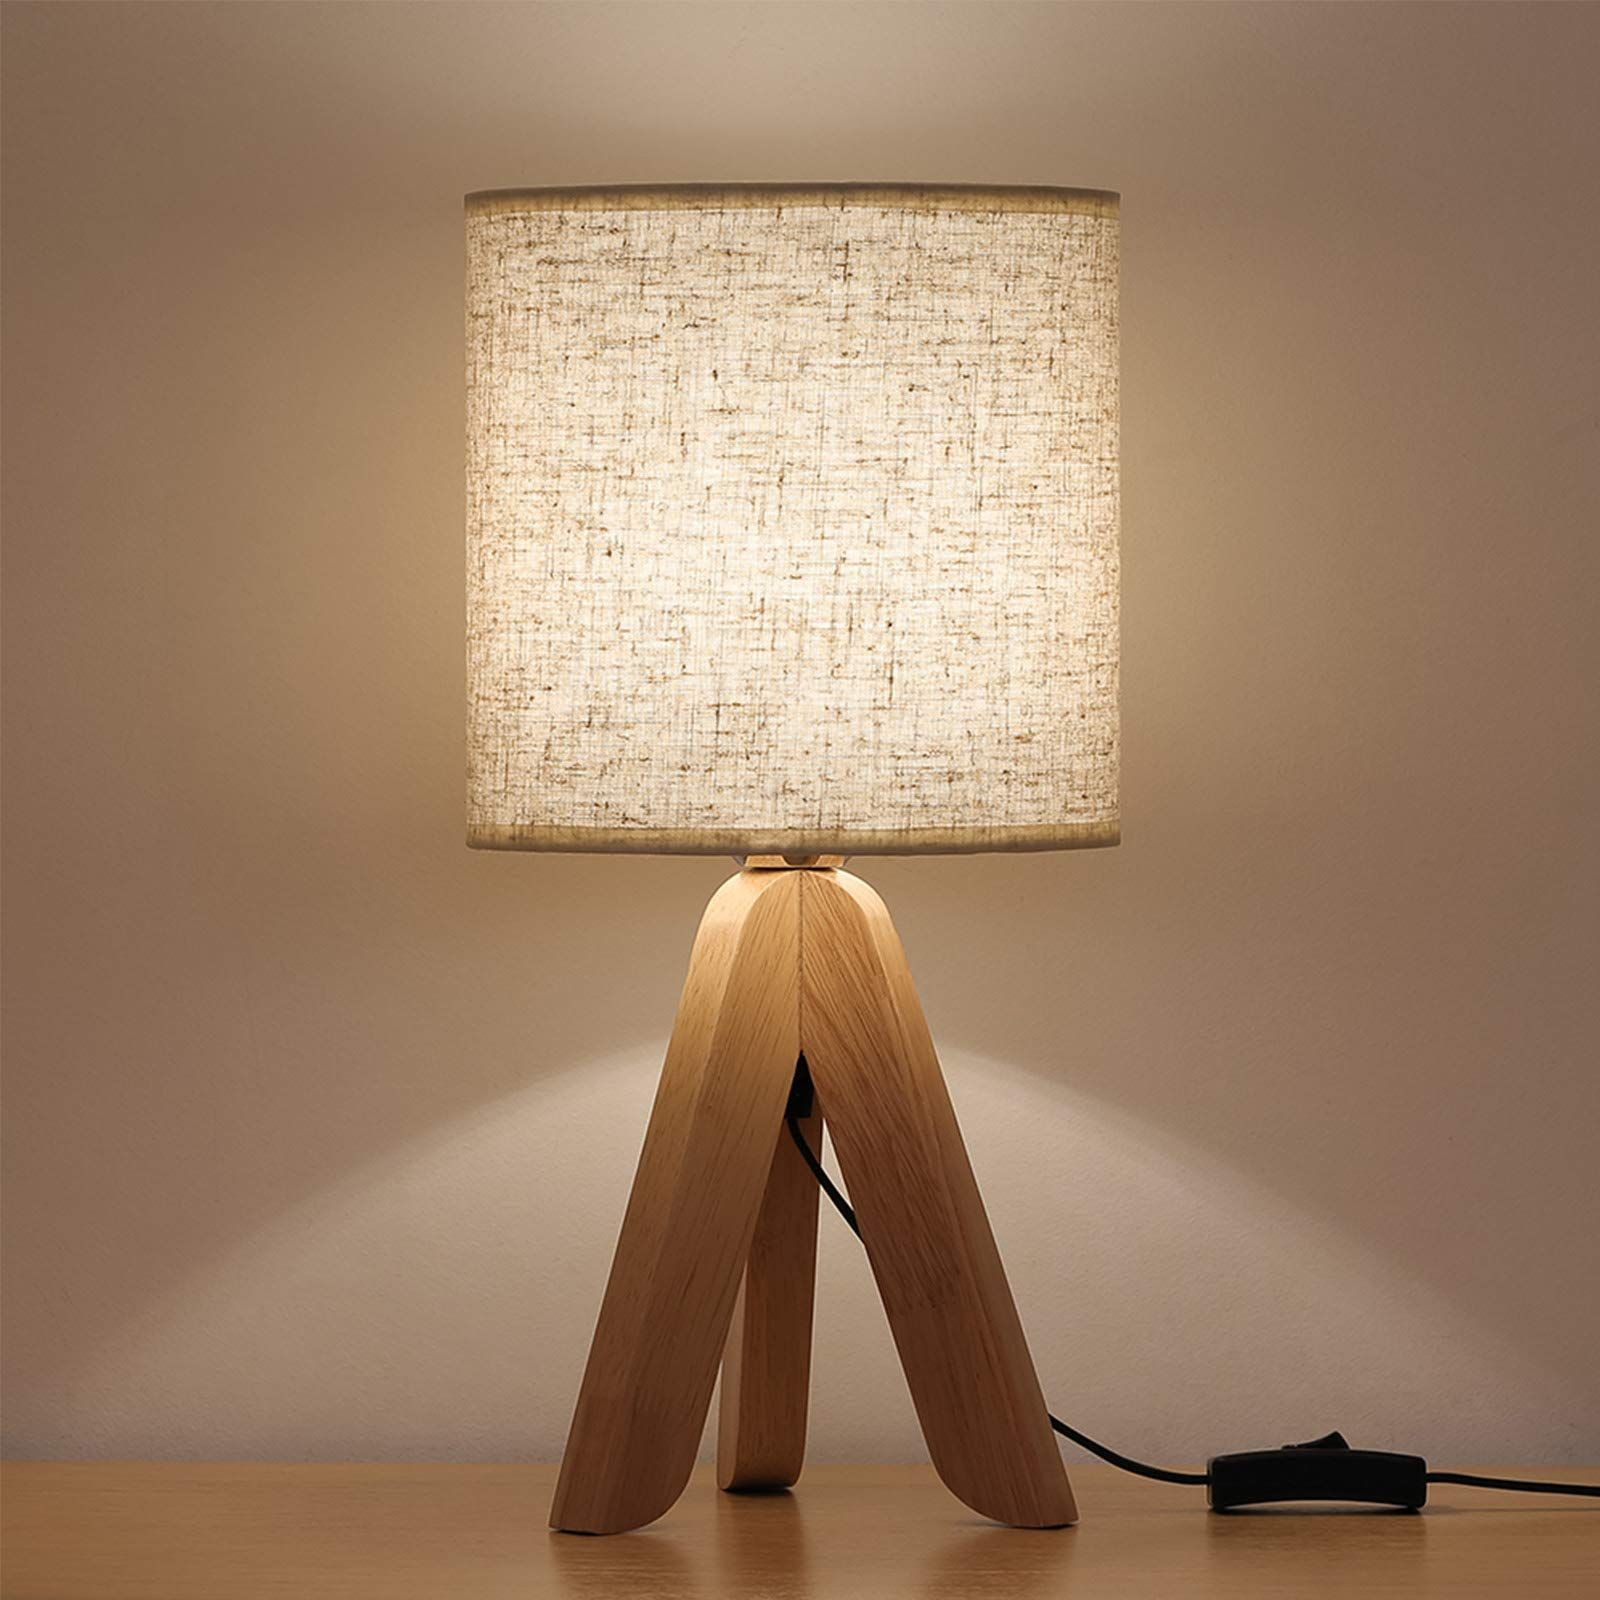 Amazon S A Treasure Trove Of Scandi Style Home Scores In 2021 Small Bedside Table Lamps Wooden Table Lamps Table Lamps For Bedroom